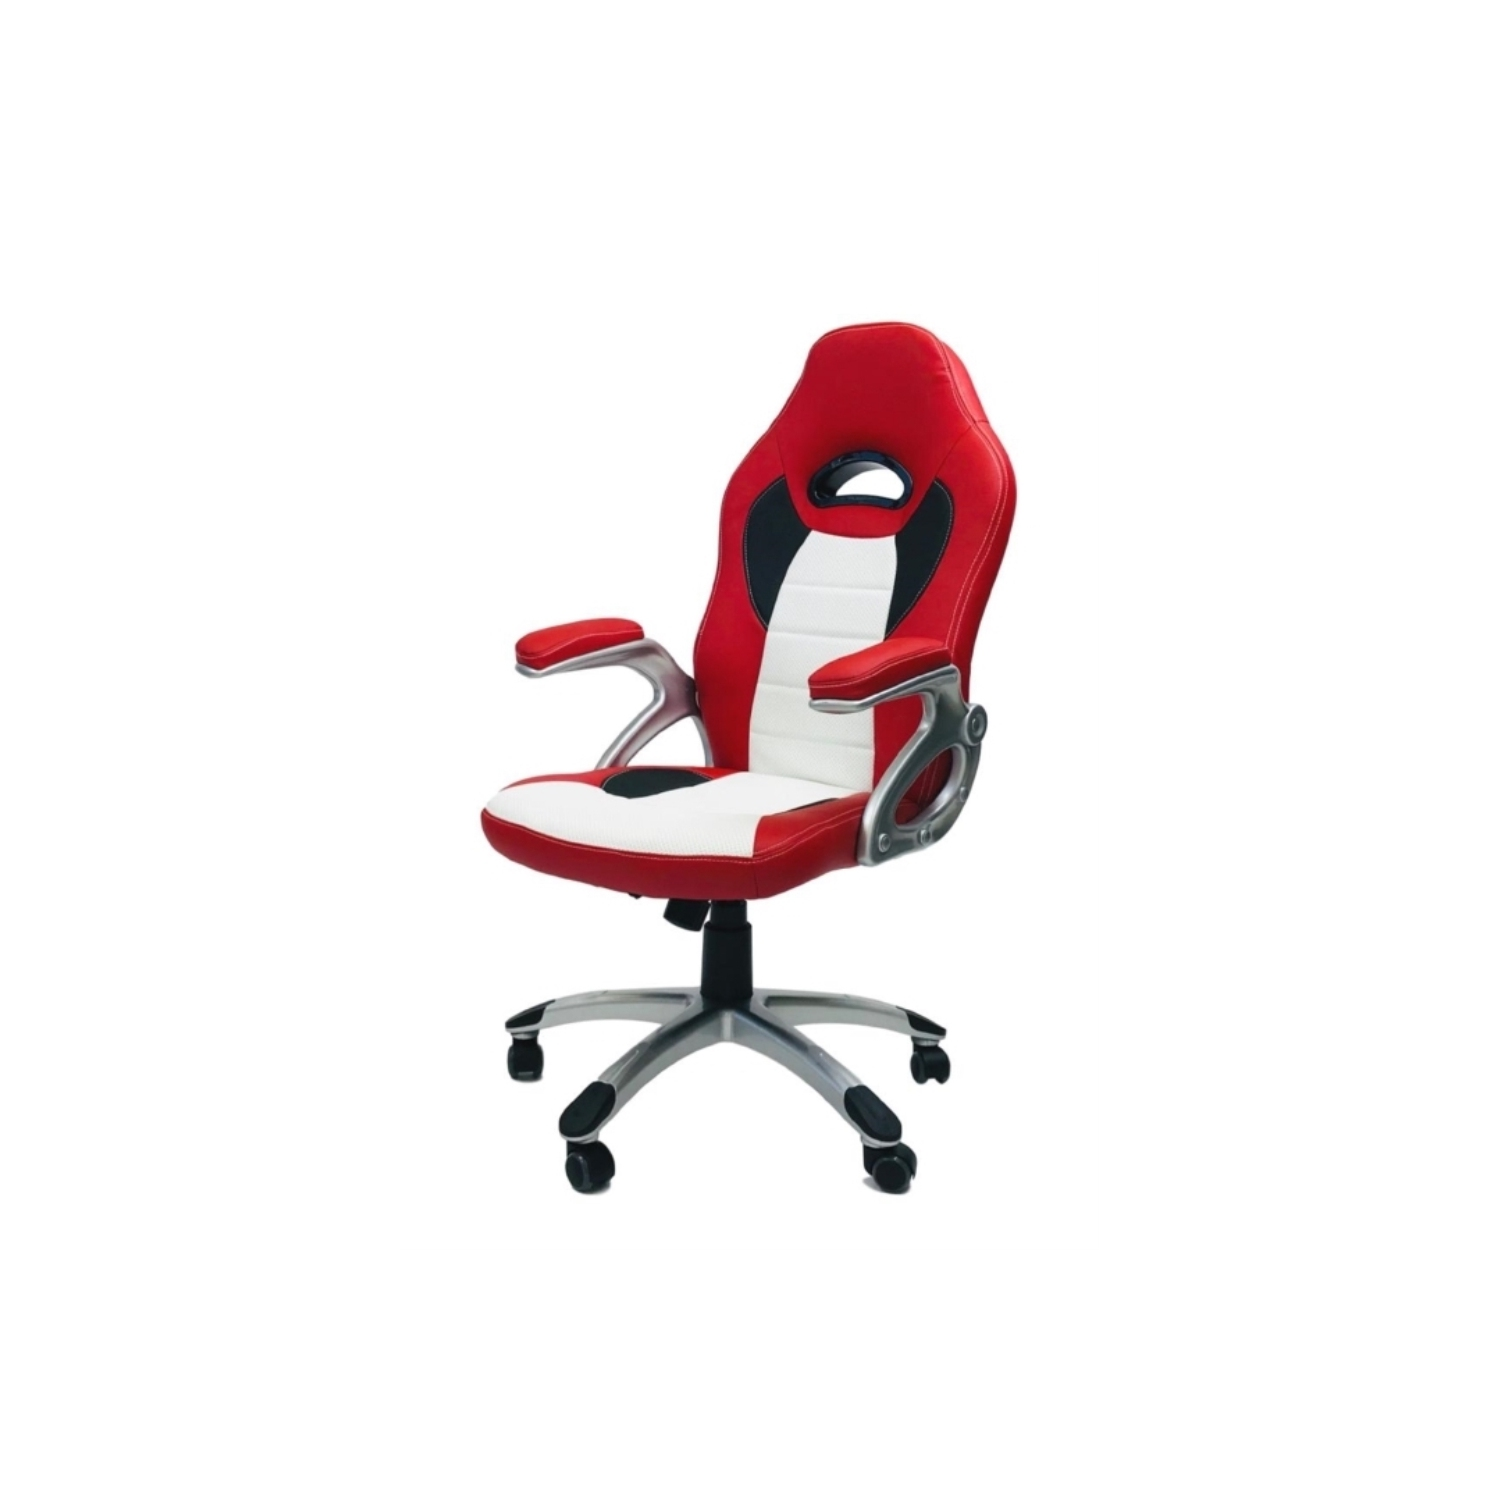 Viscologicthrill Sports Gaming Chair Red N White Gaming Chairs